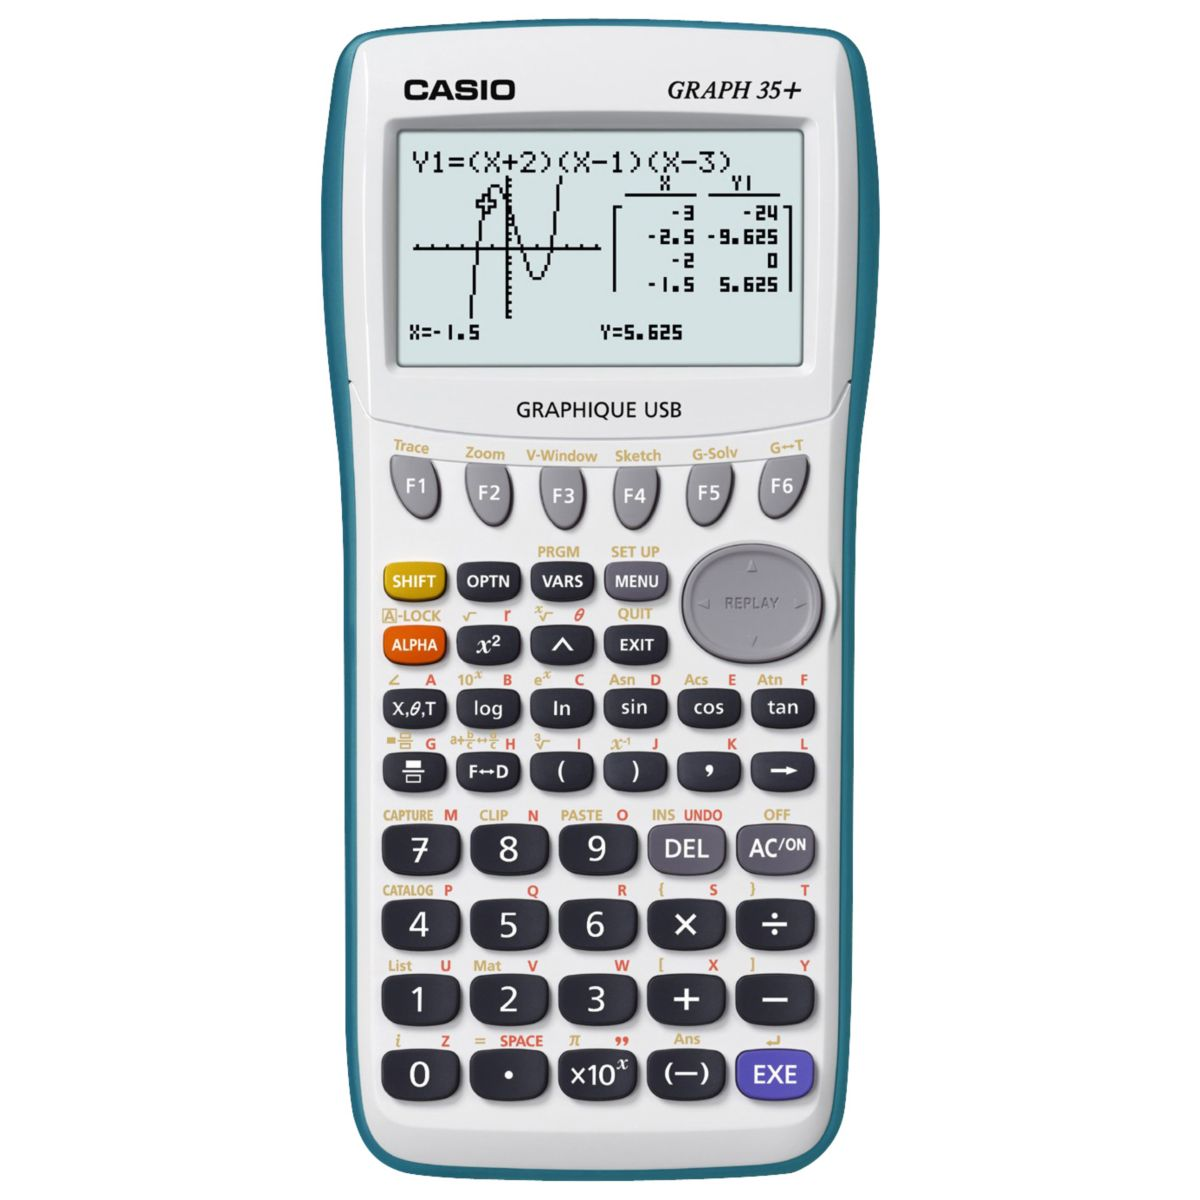 Calculatrice graphique CASIO GRAPH 35+ E (photo)